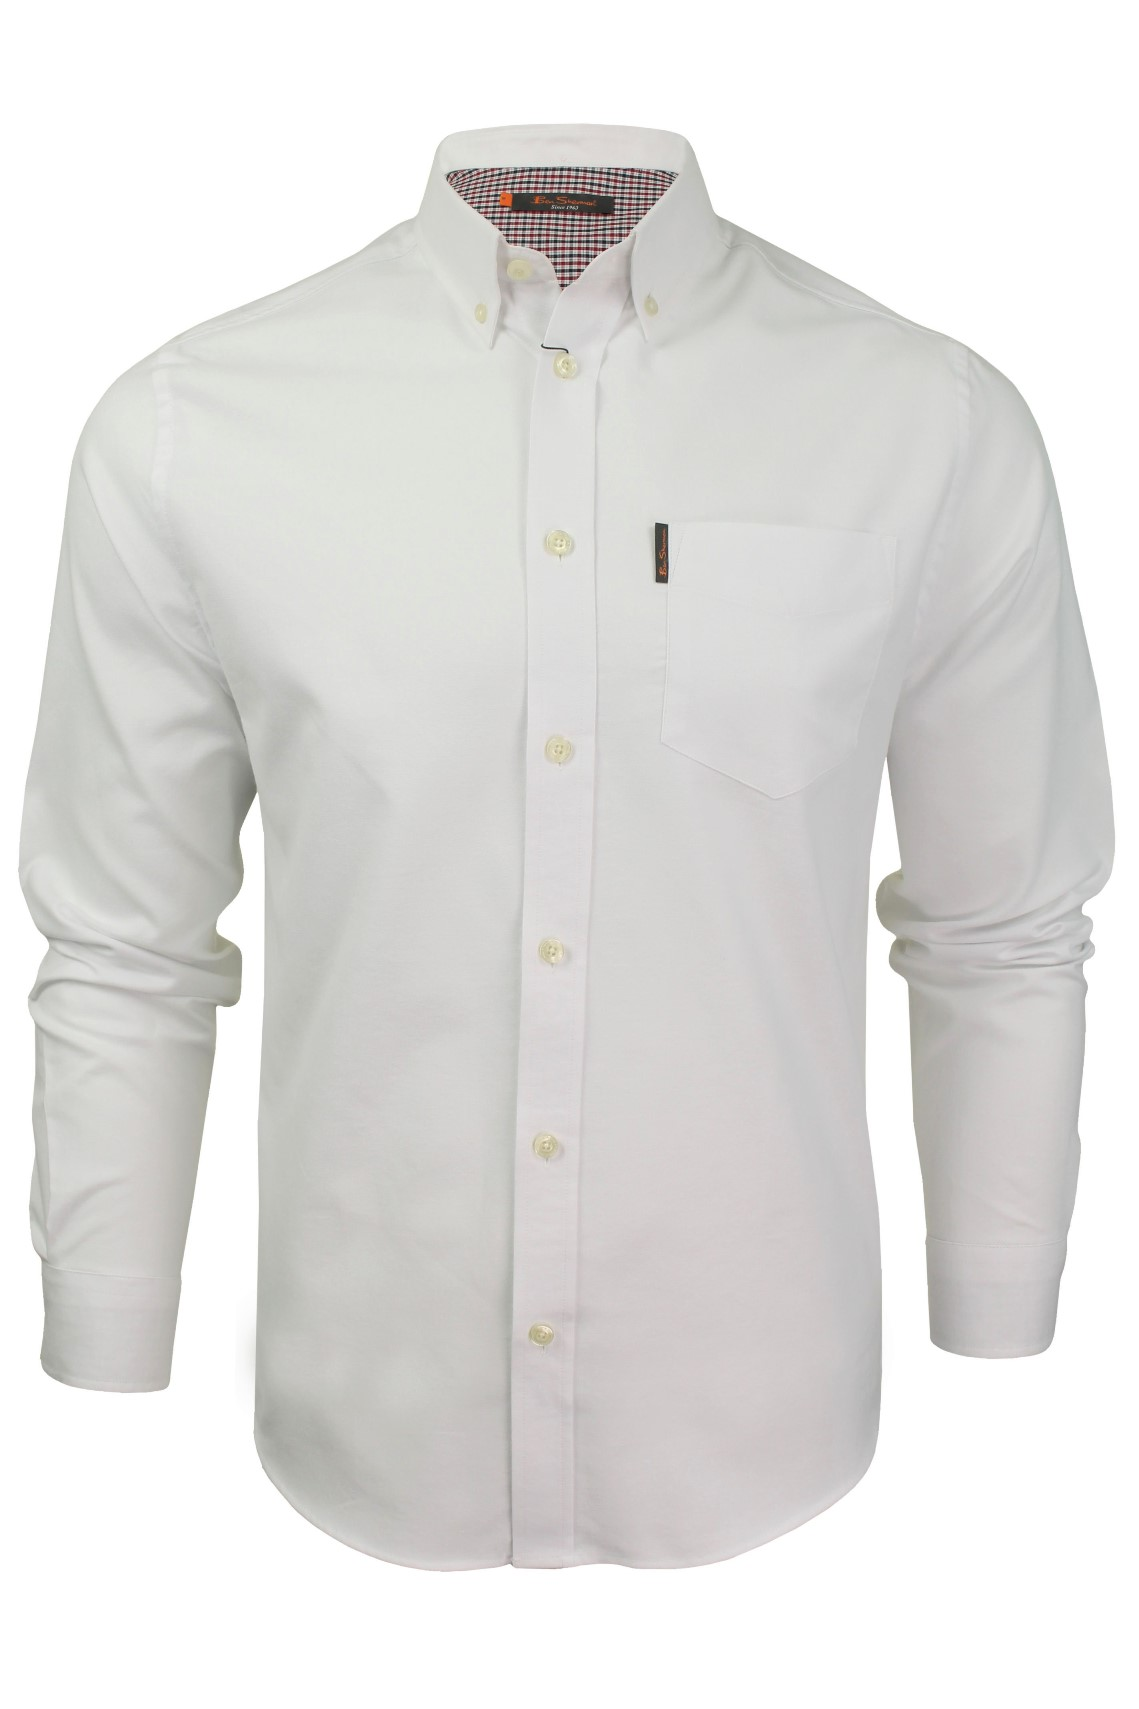 Mens-Oxford-Shirt-by-Ben-Sherman-Long-Sleeved thumbnail 21